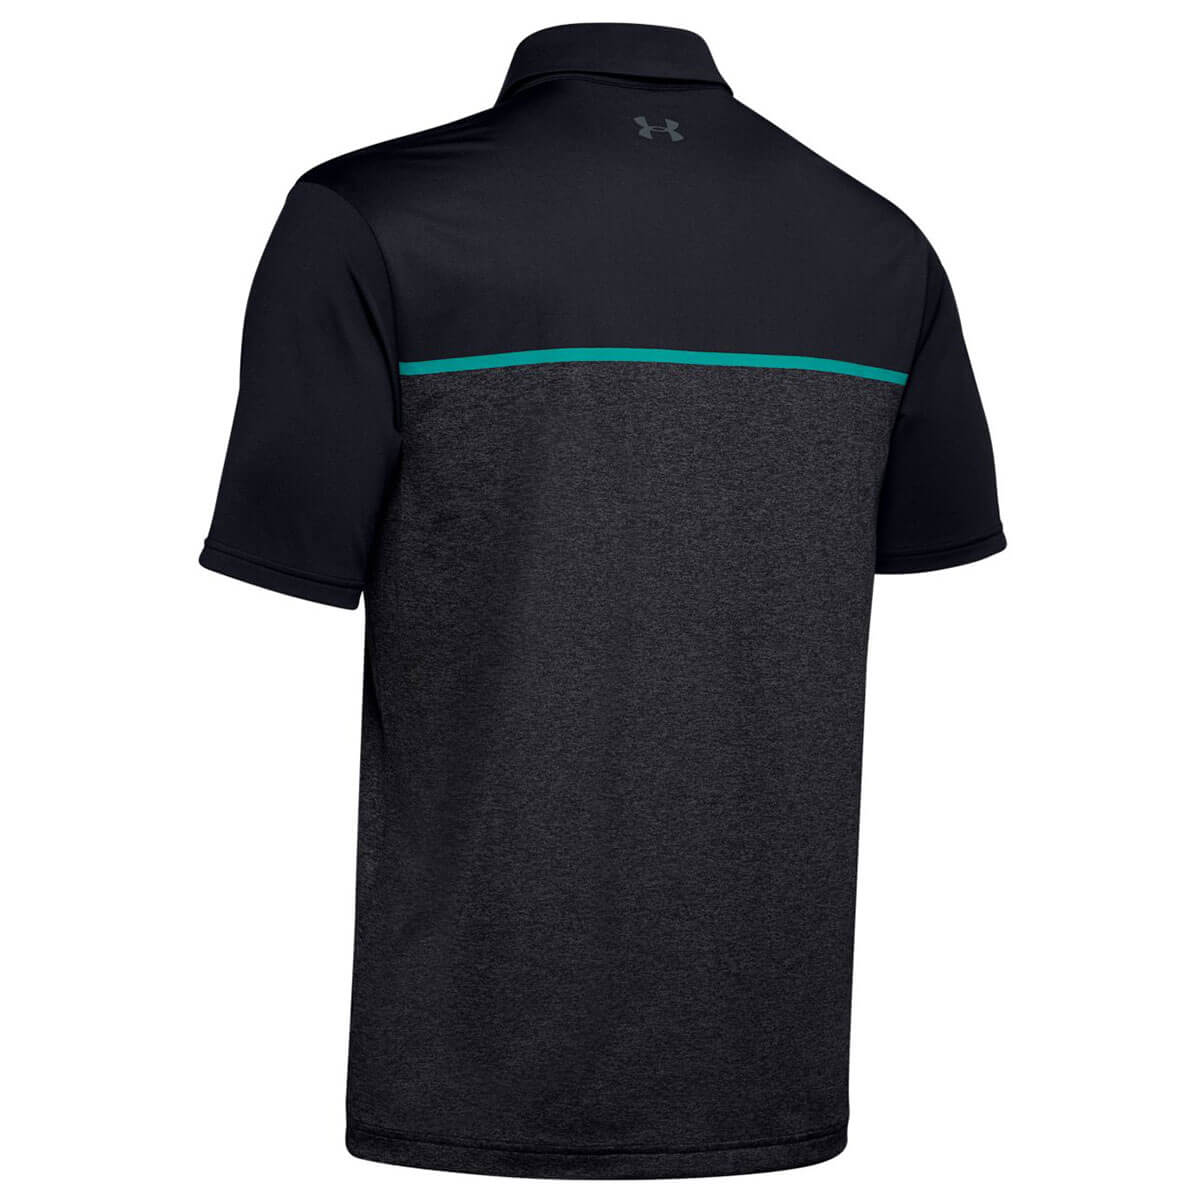 Under-Armour-Mens-2019-Playoff-Polo-2-0-Breathable-Light-Stretch-Polo-Shirt thumbnail 41